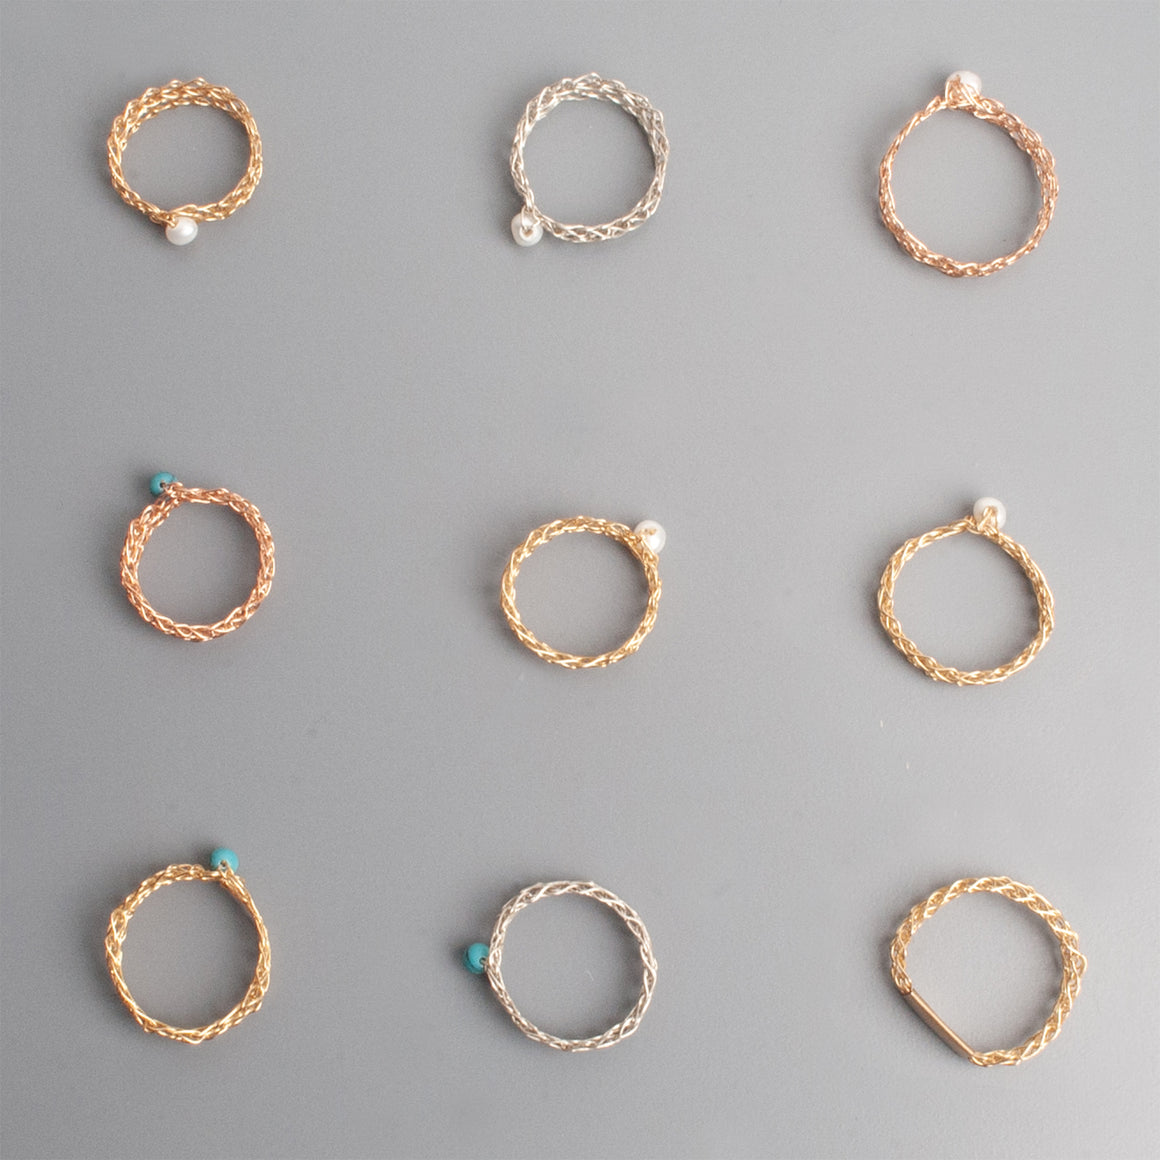 Thia rings - Sample sale - Yooladesign